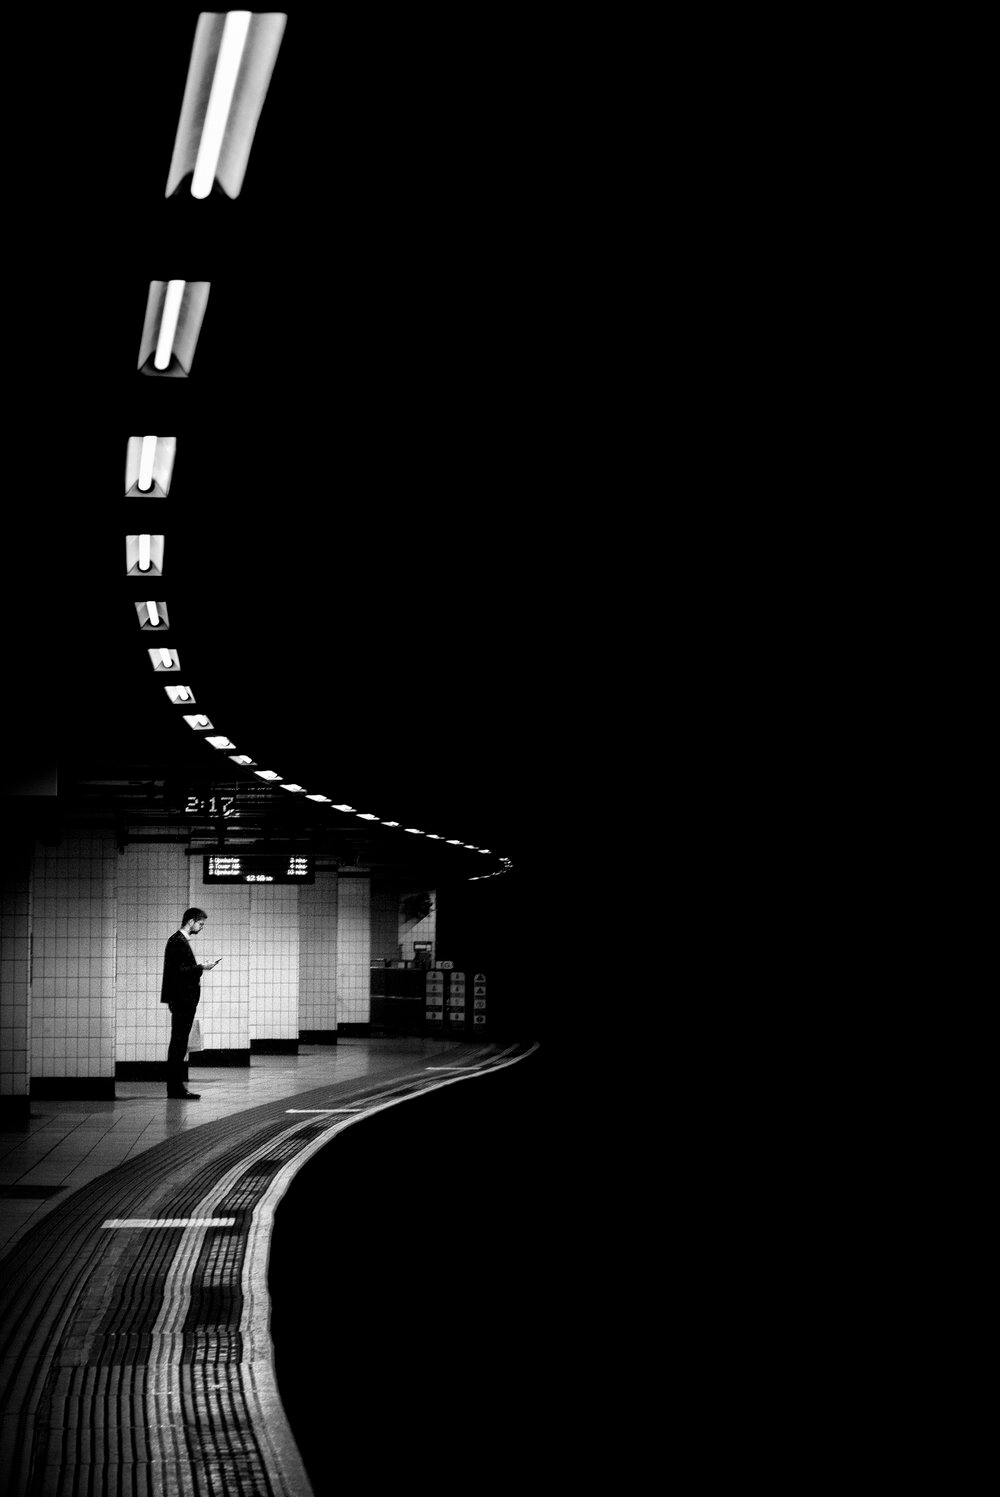 High contrast photography by Alan Schaller